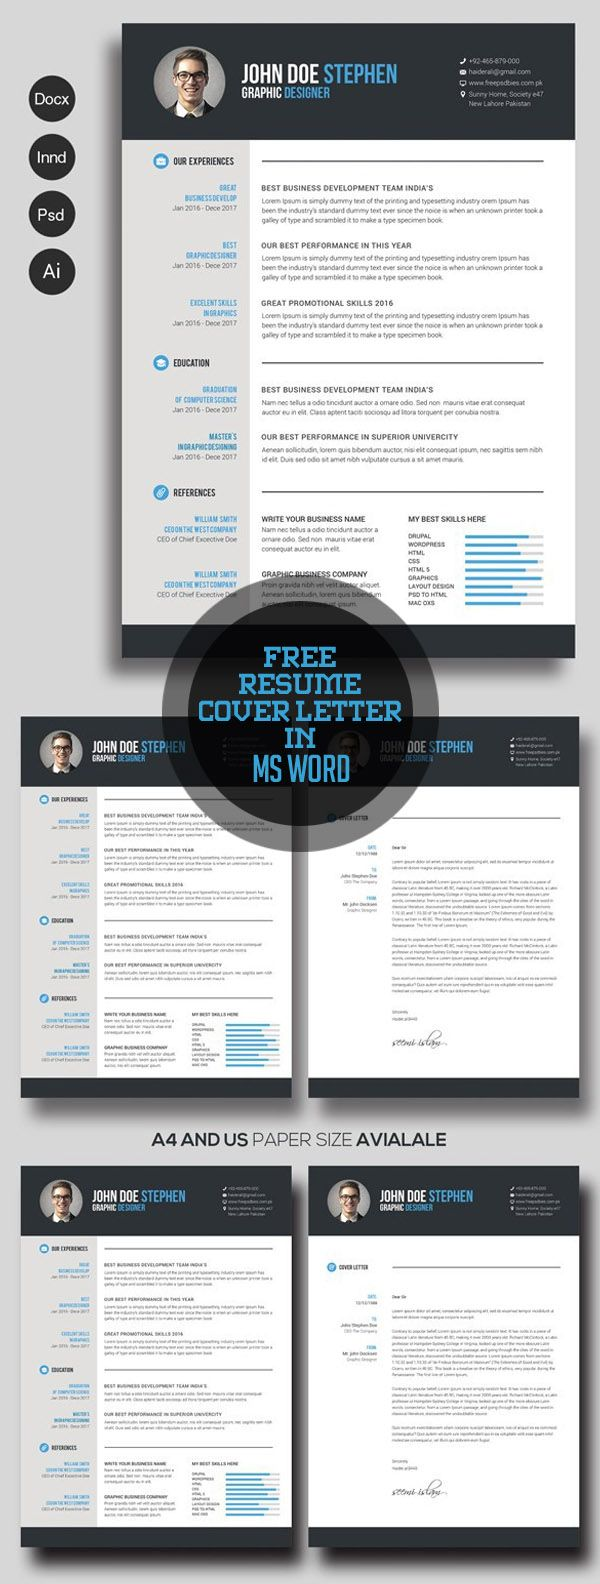 Free Resume & Cover Letter in Ms Word | Me Likey! | Pinterest ...